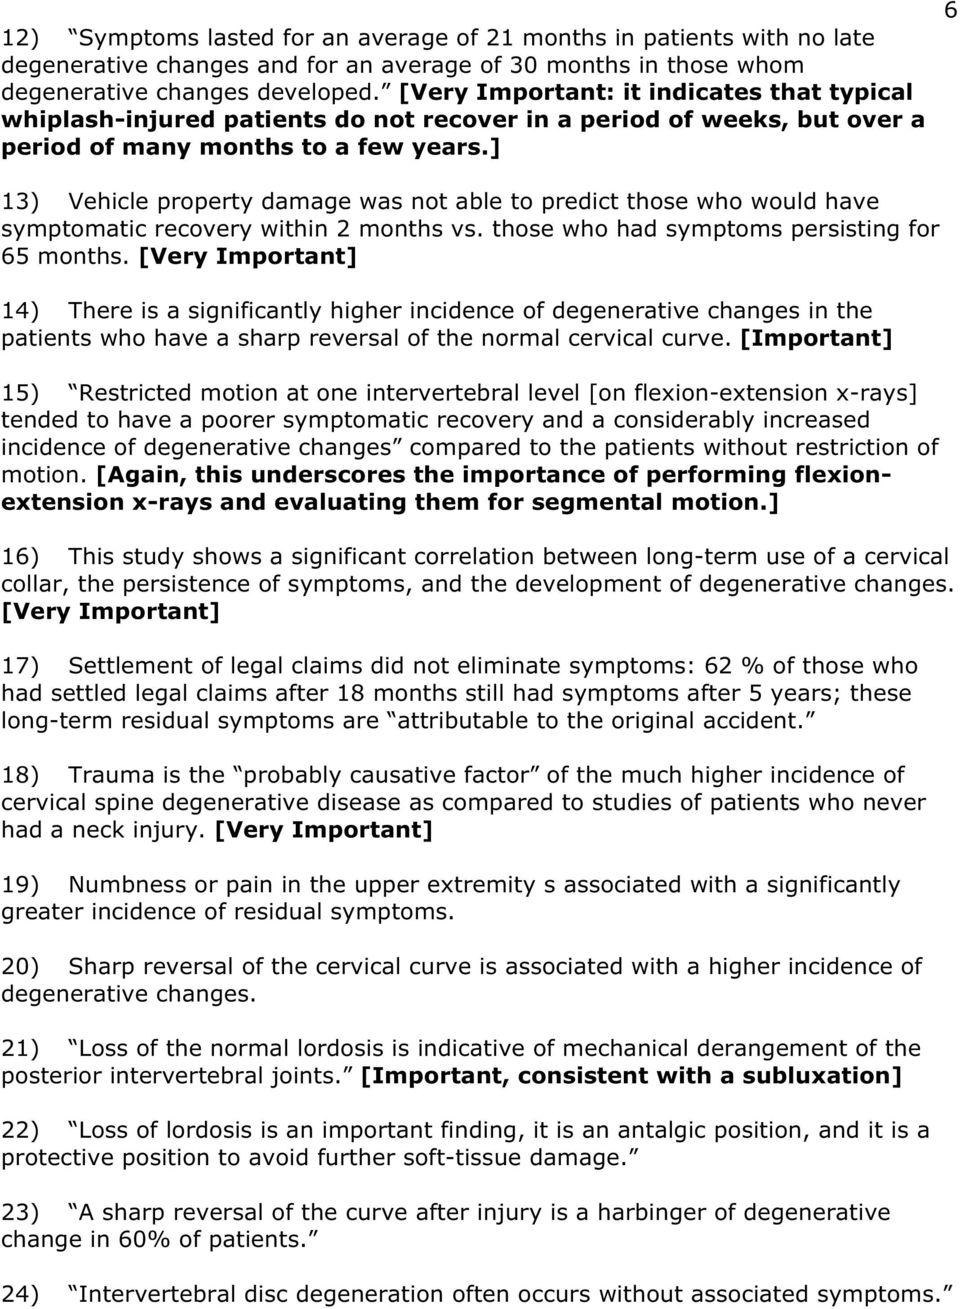 Soft-tissue injuries of the neck in automobile accidents: Factors